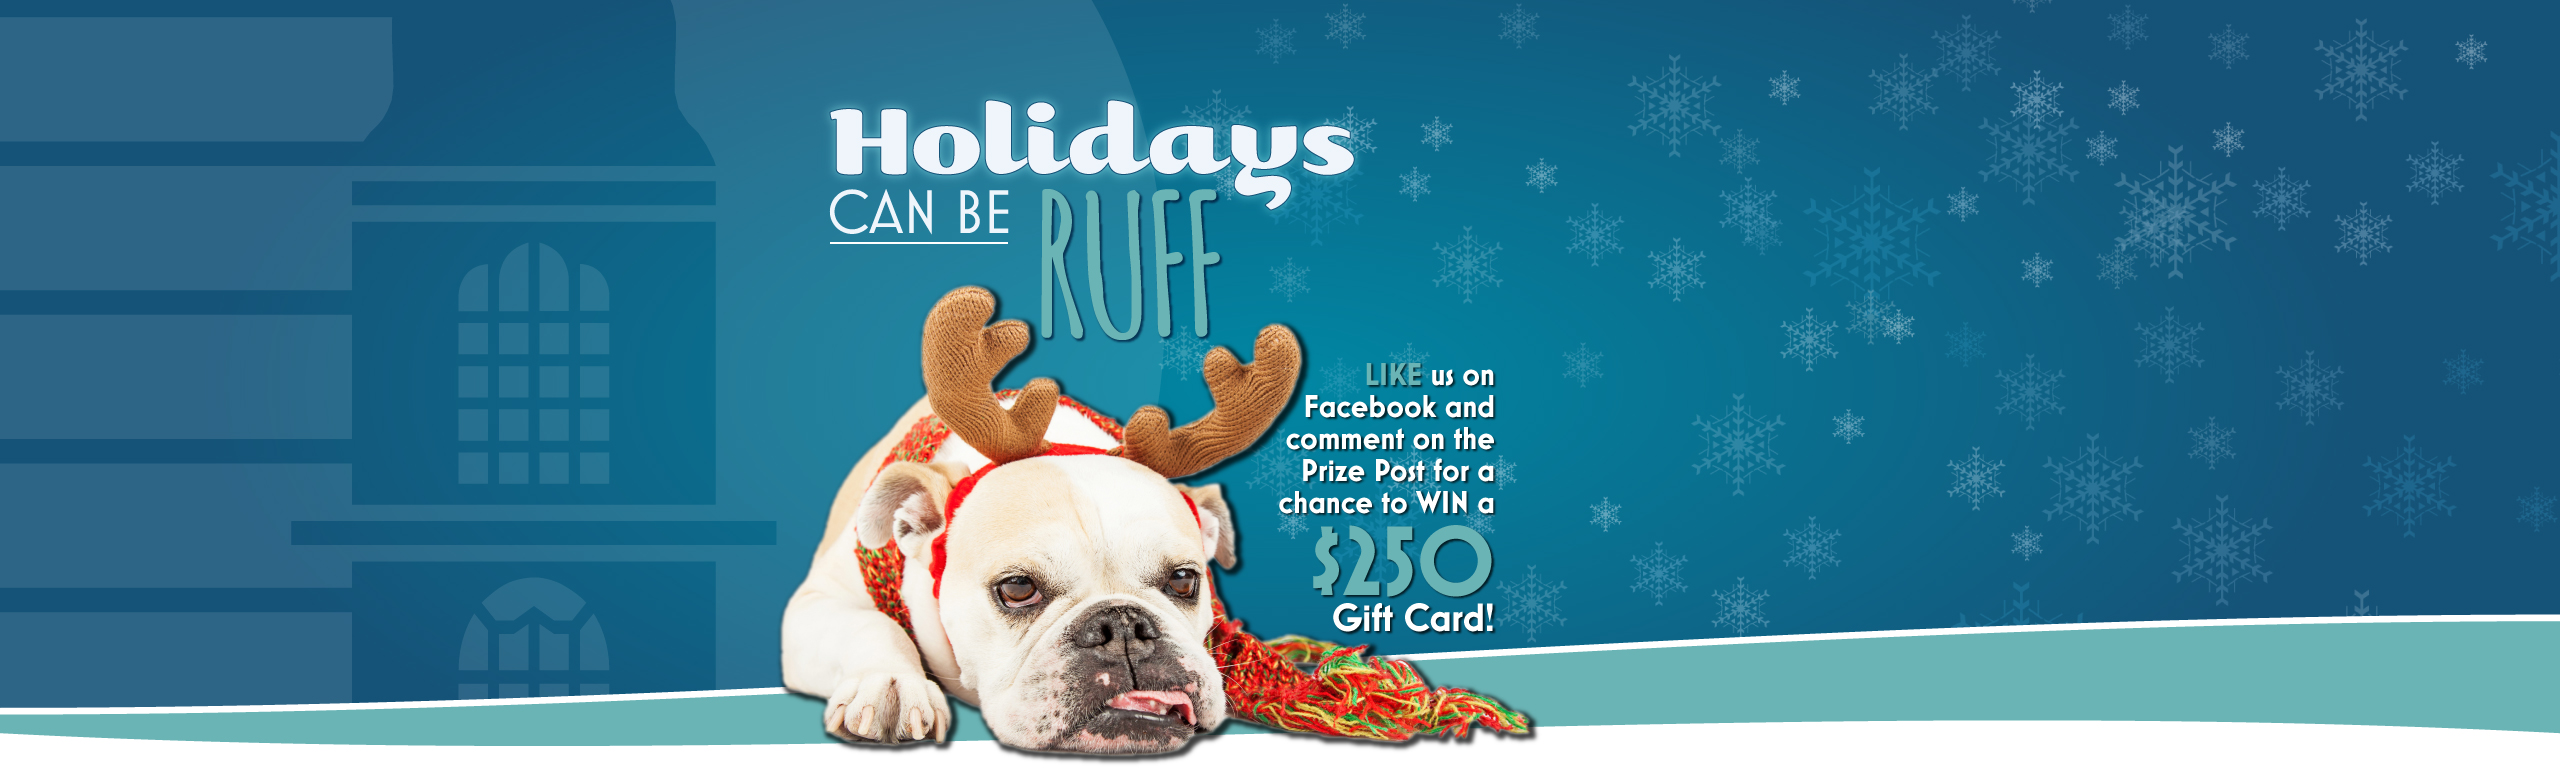 Holidays can be RUFF! Like us on Facebook and comment on the prize post for a chance to WIN a $250 Gift Card!